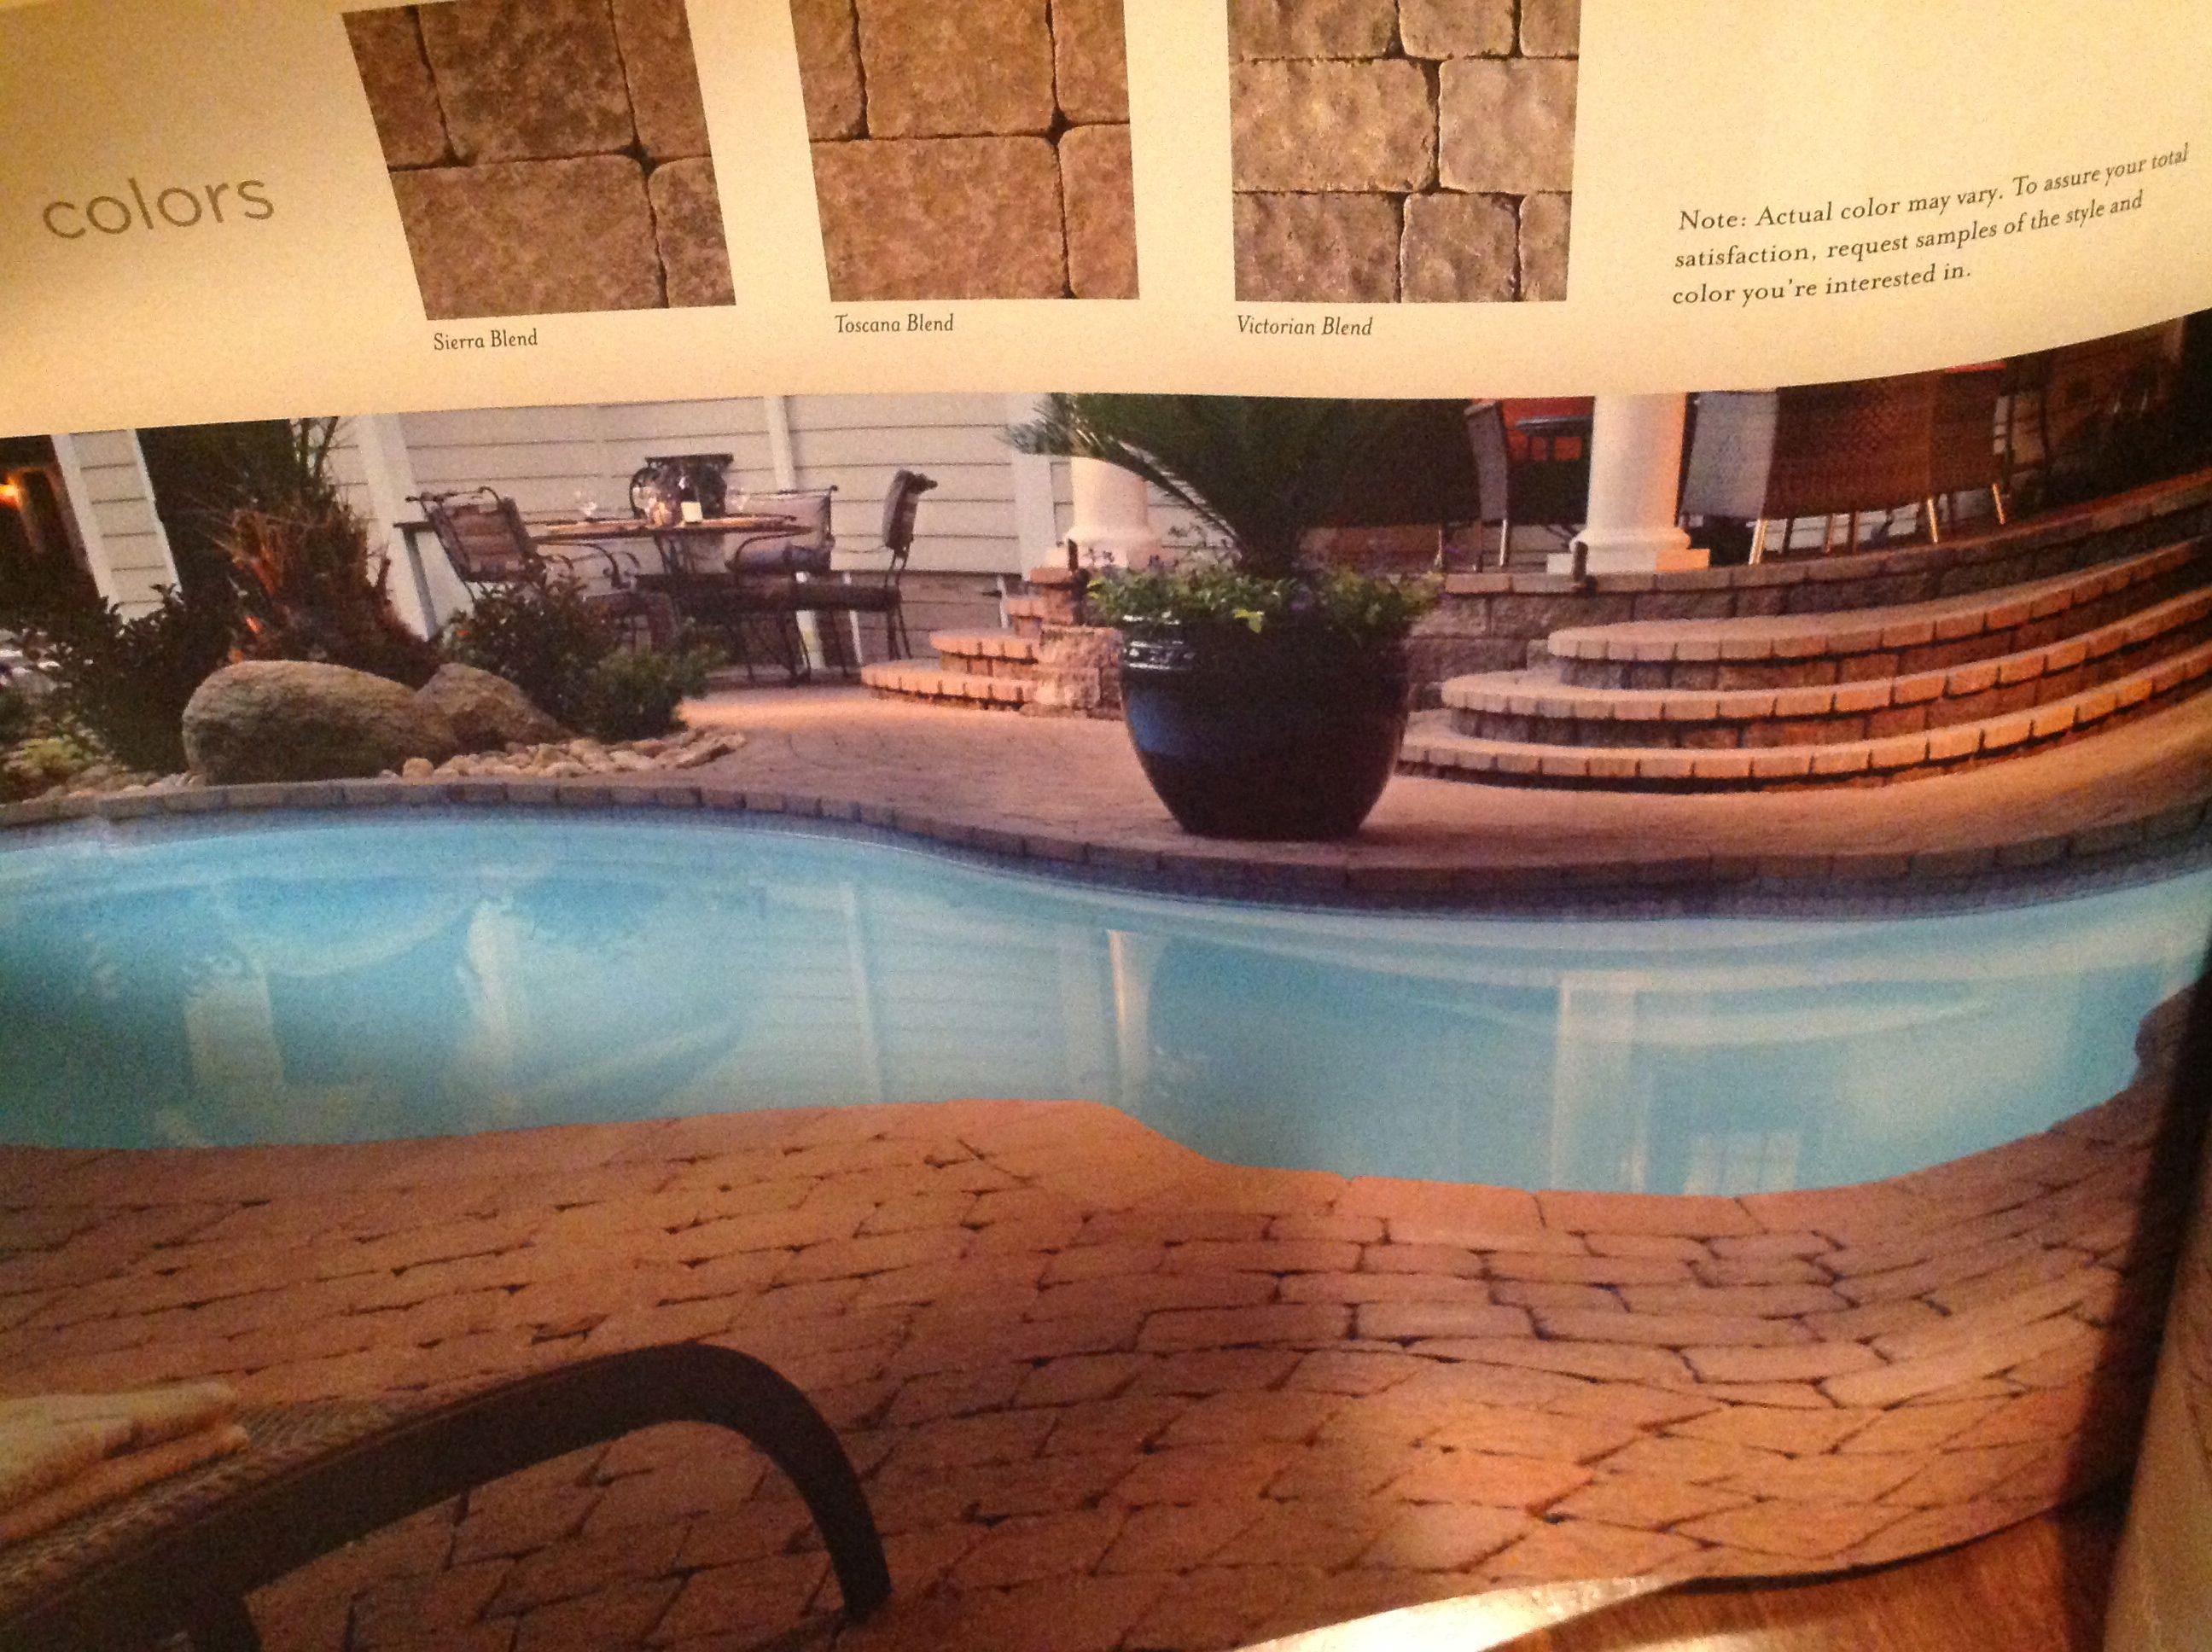 Gfk Pool Sale Heck Out Our Belgard Paver Collection Http Bit Ly 1fqscbb